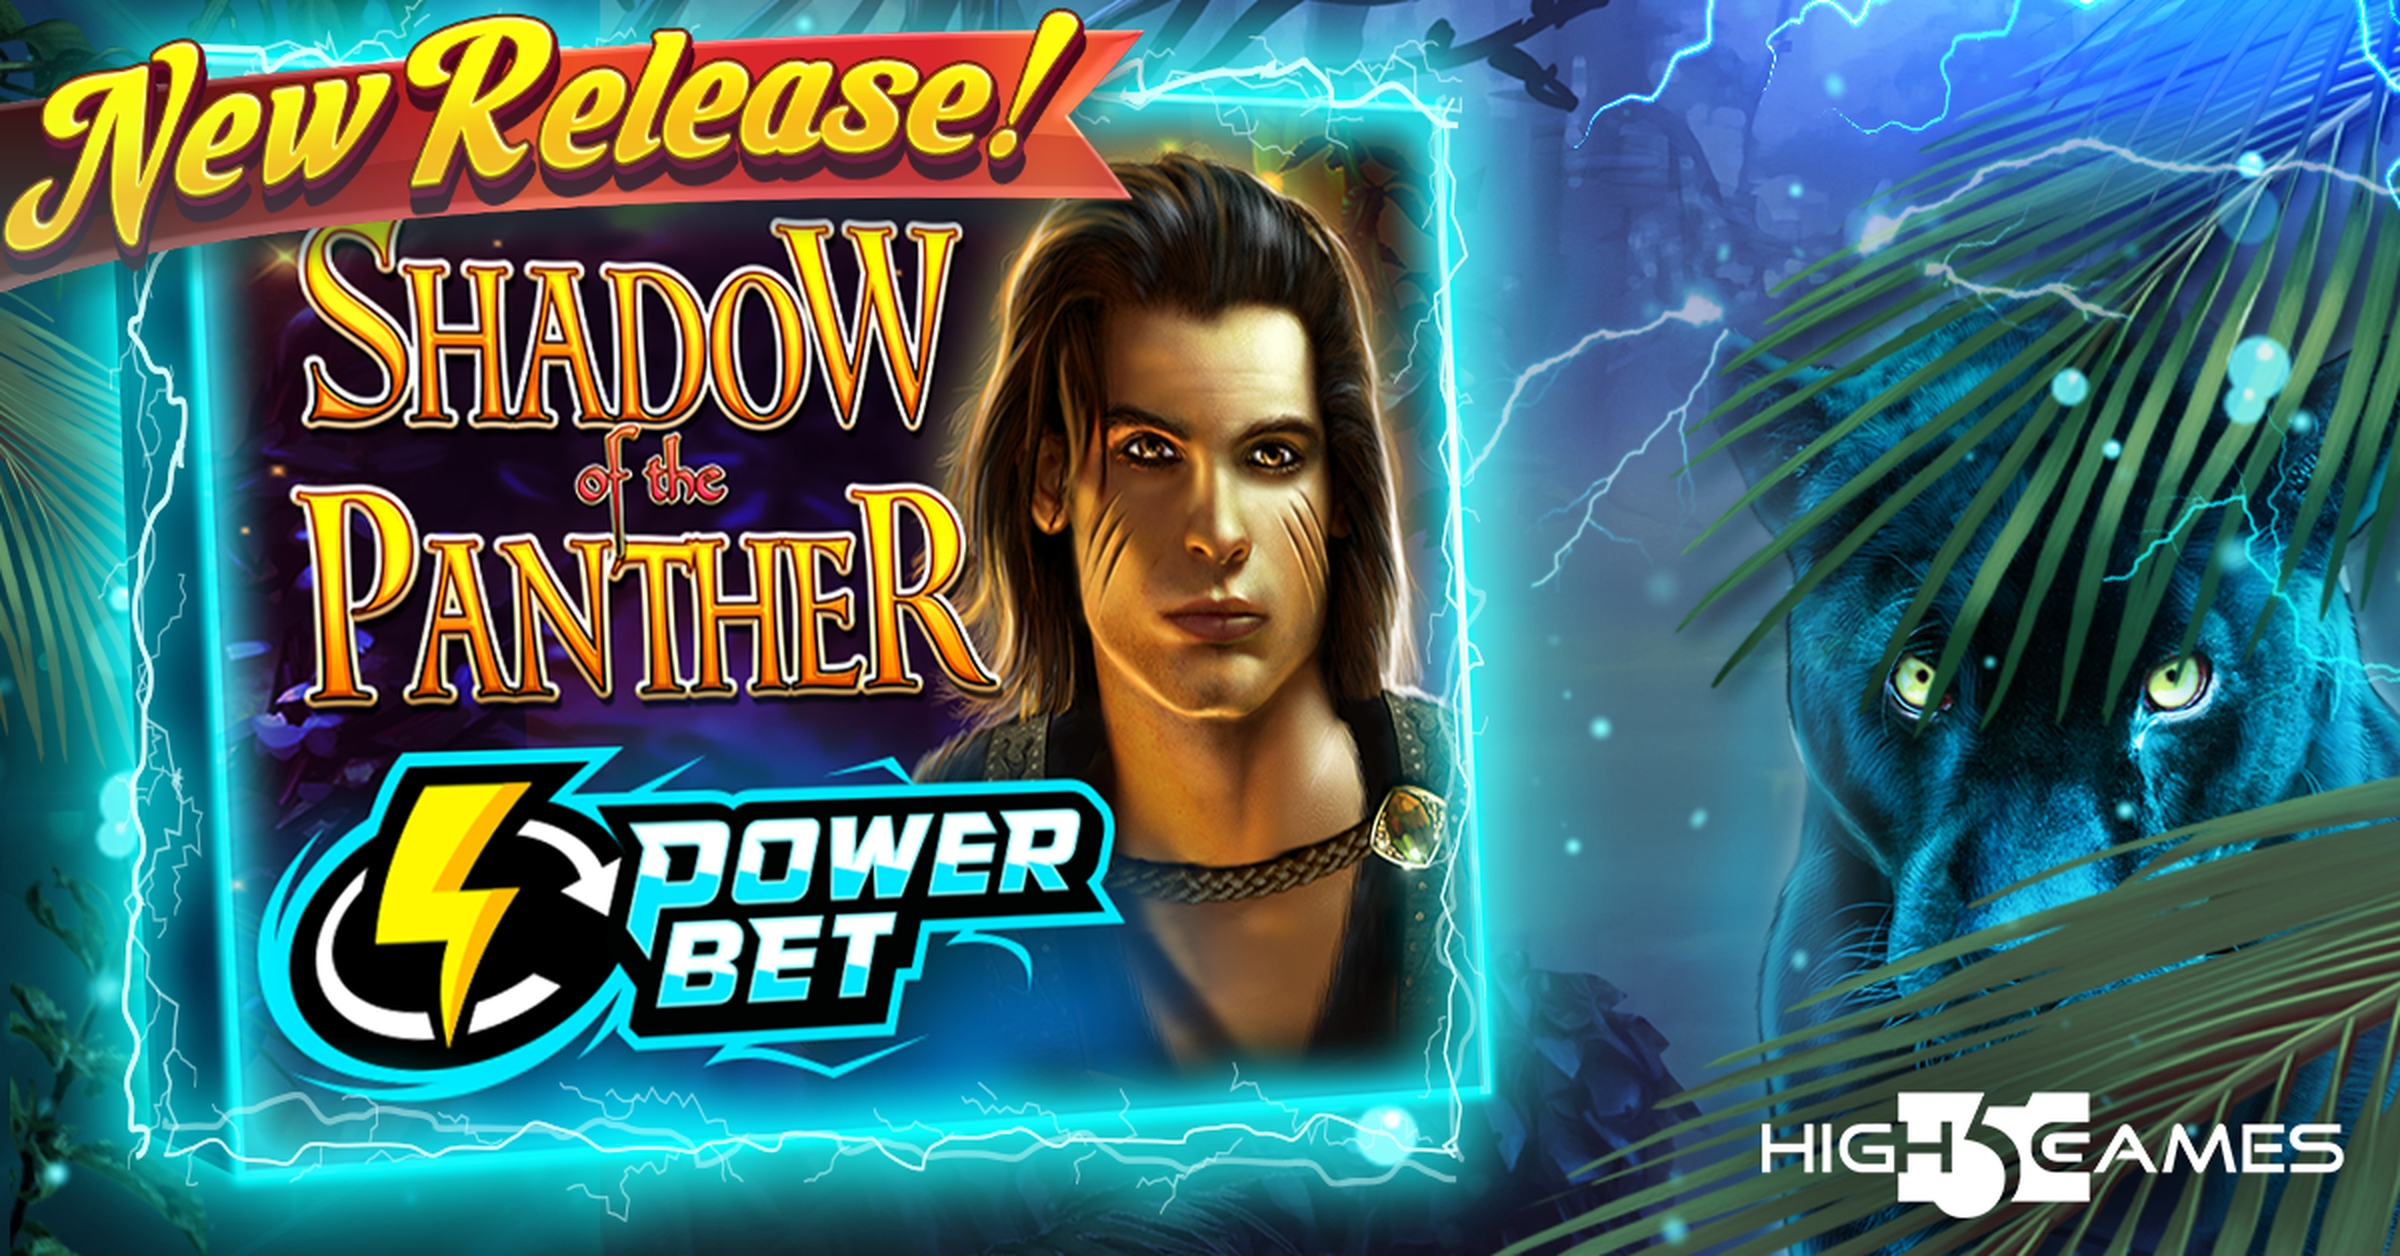 The Shadow of the Panther Online Slot Demo Game by High 5 Games